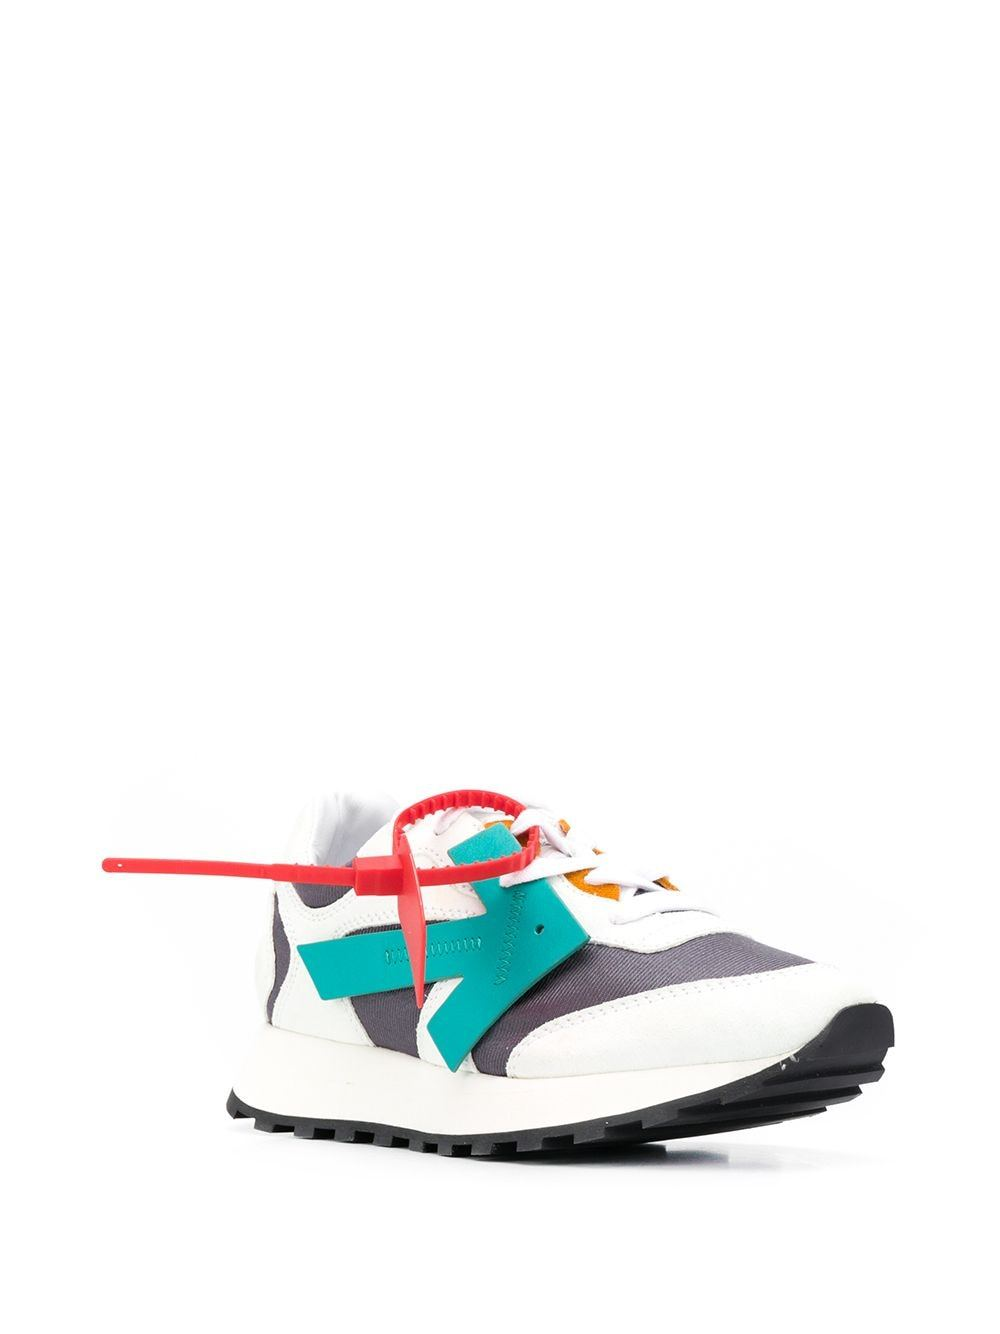 OFF-WHITE hg runner optical white